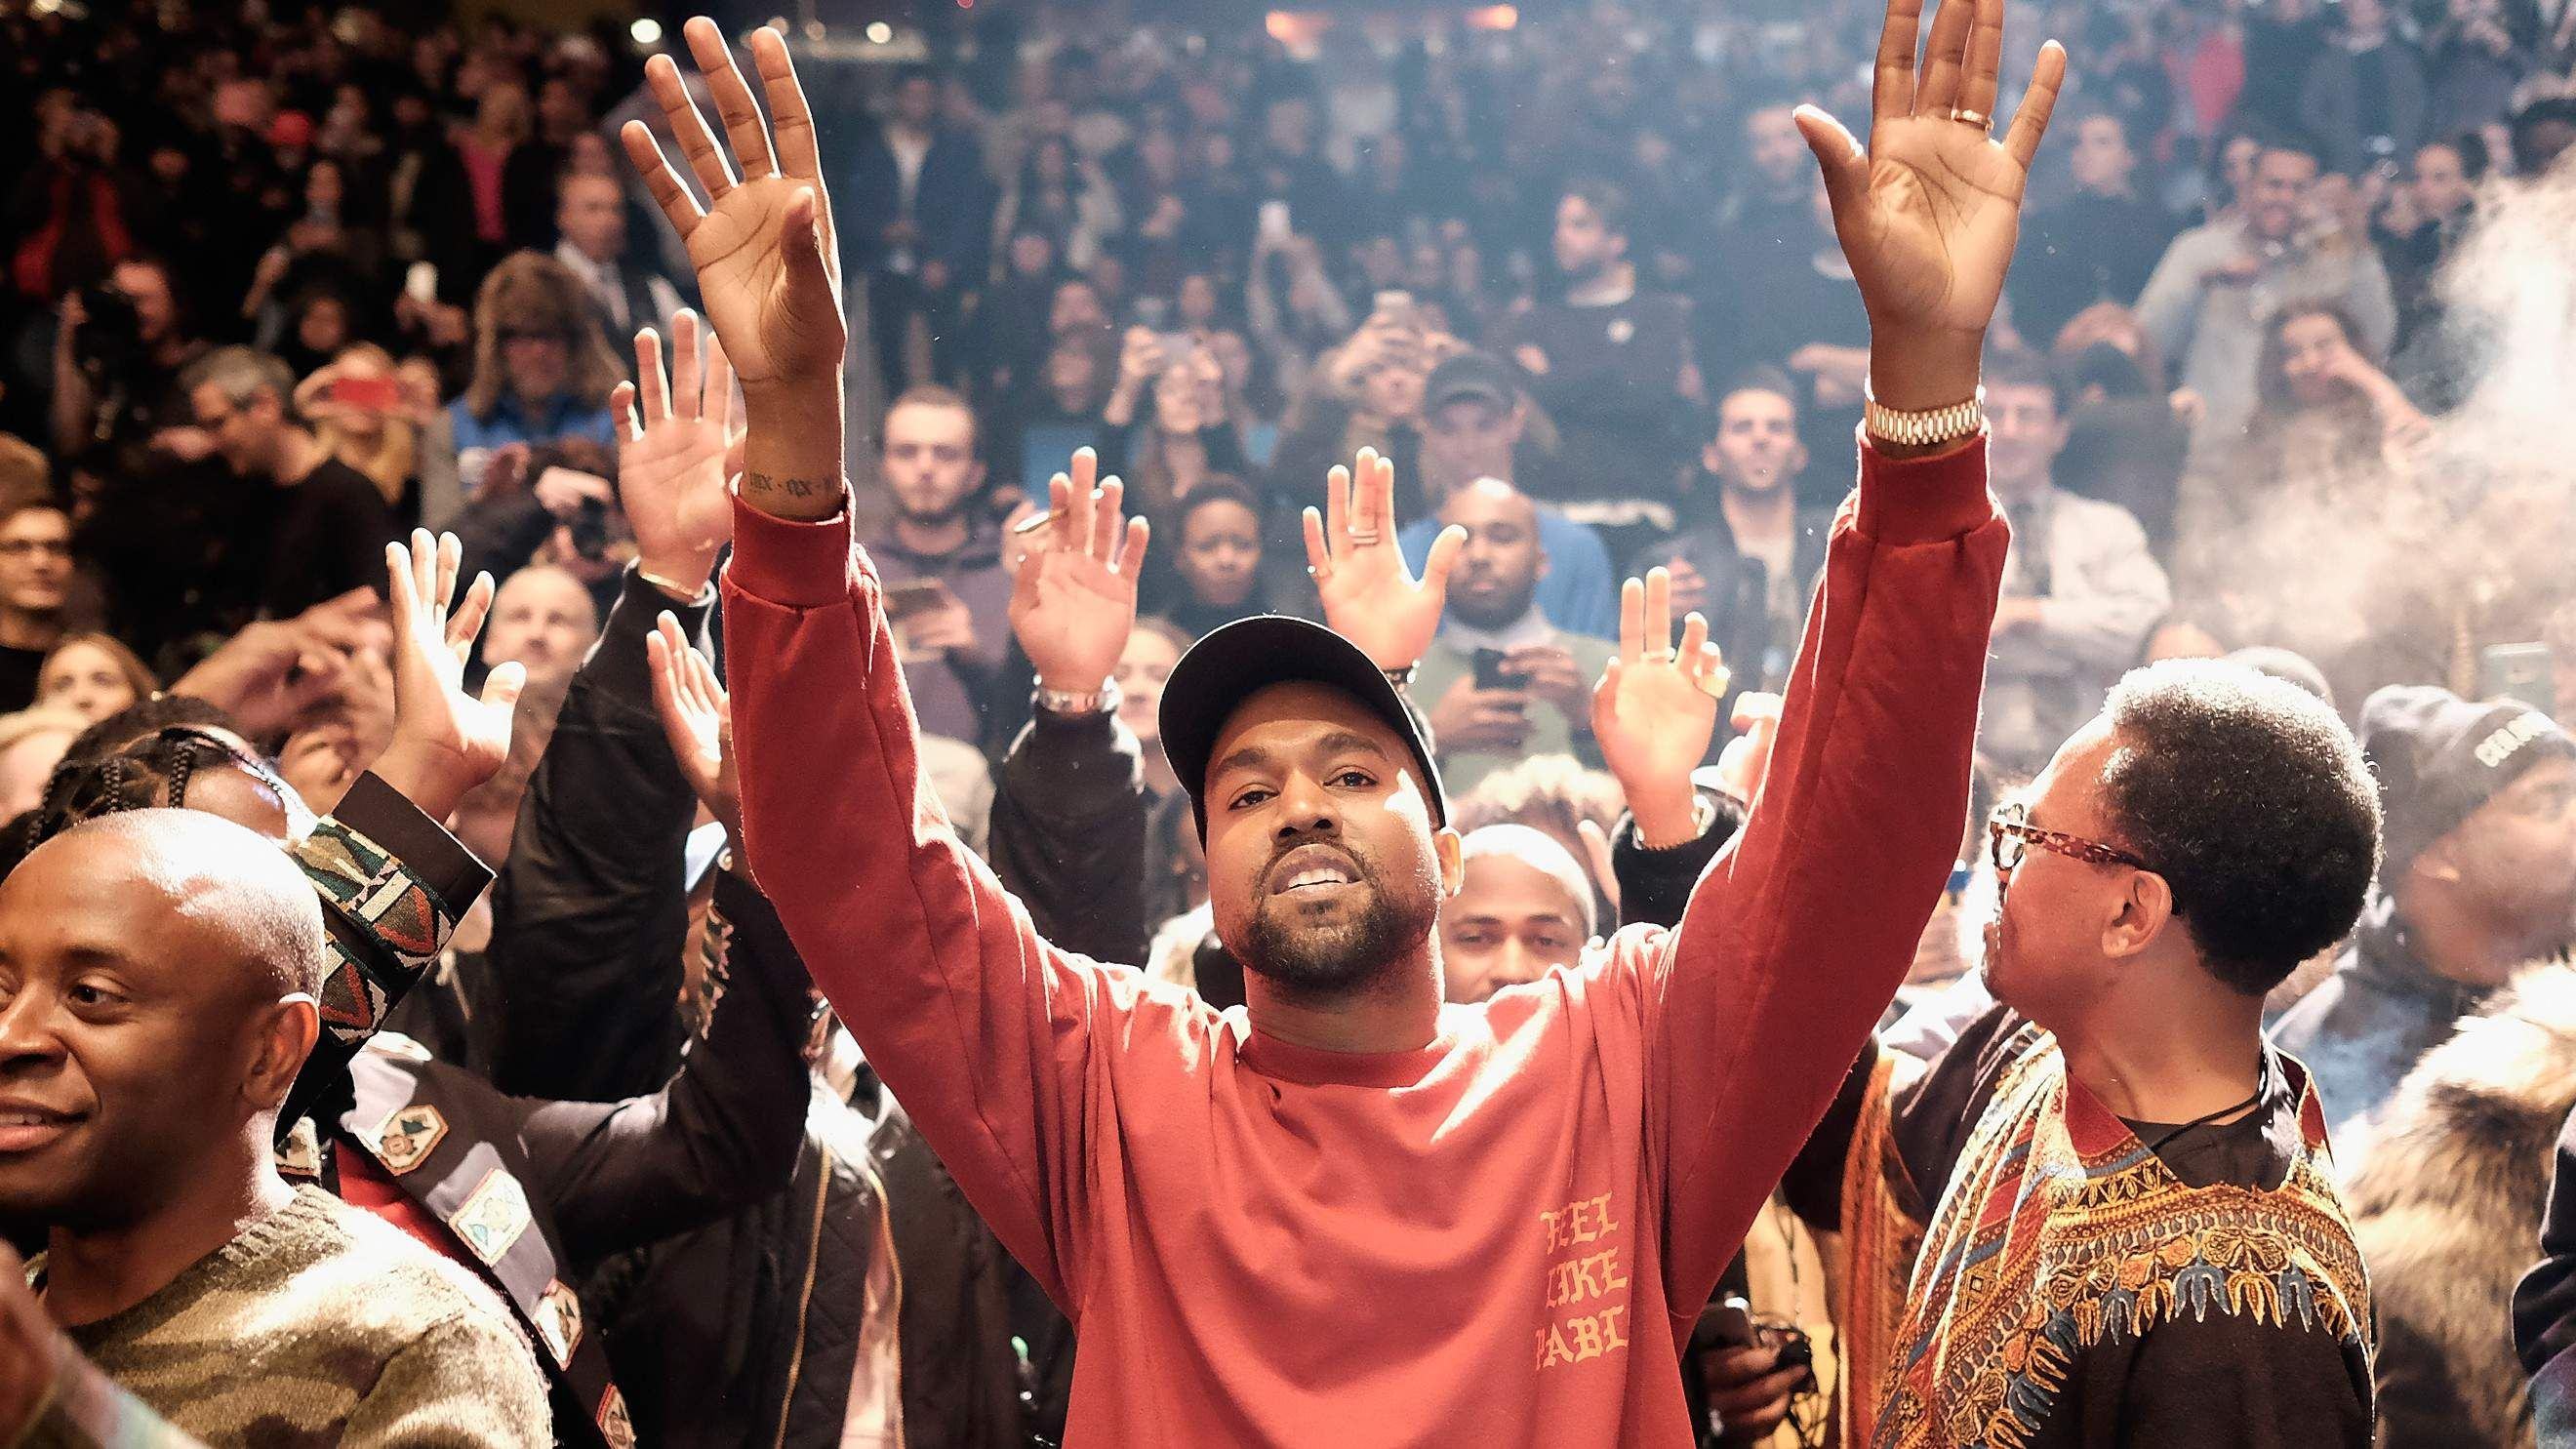 Kanye West Plays House Music During Sunday Service At Mega Church Watch Last Weekendkanye West Took Over Joel Ostee Kanye West Music Album Cover House Music